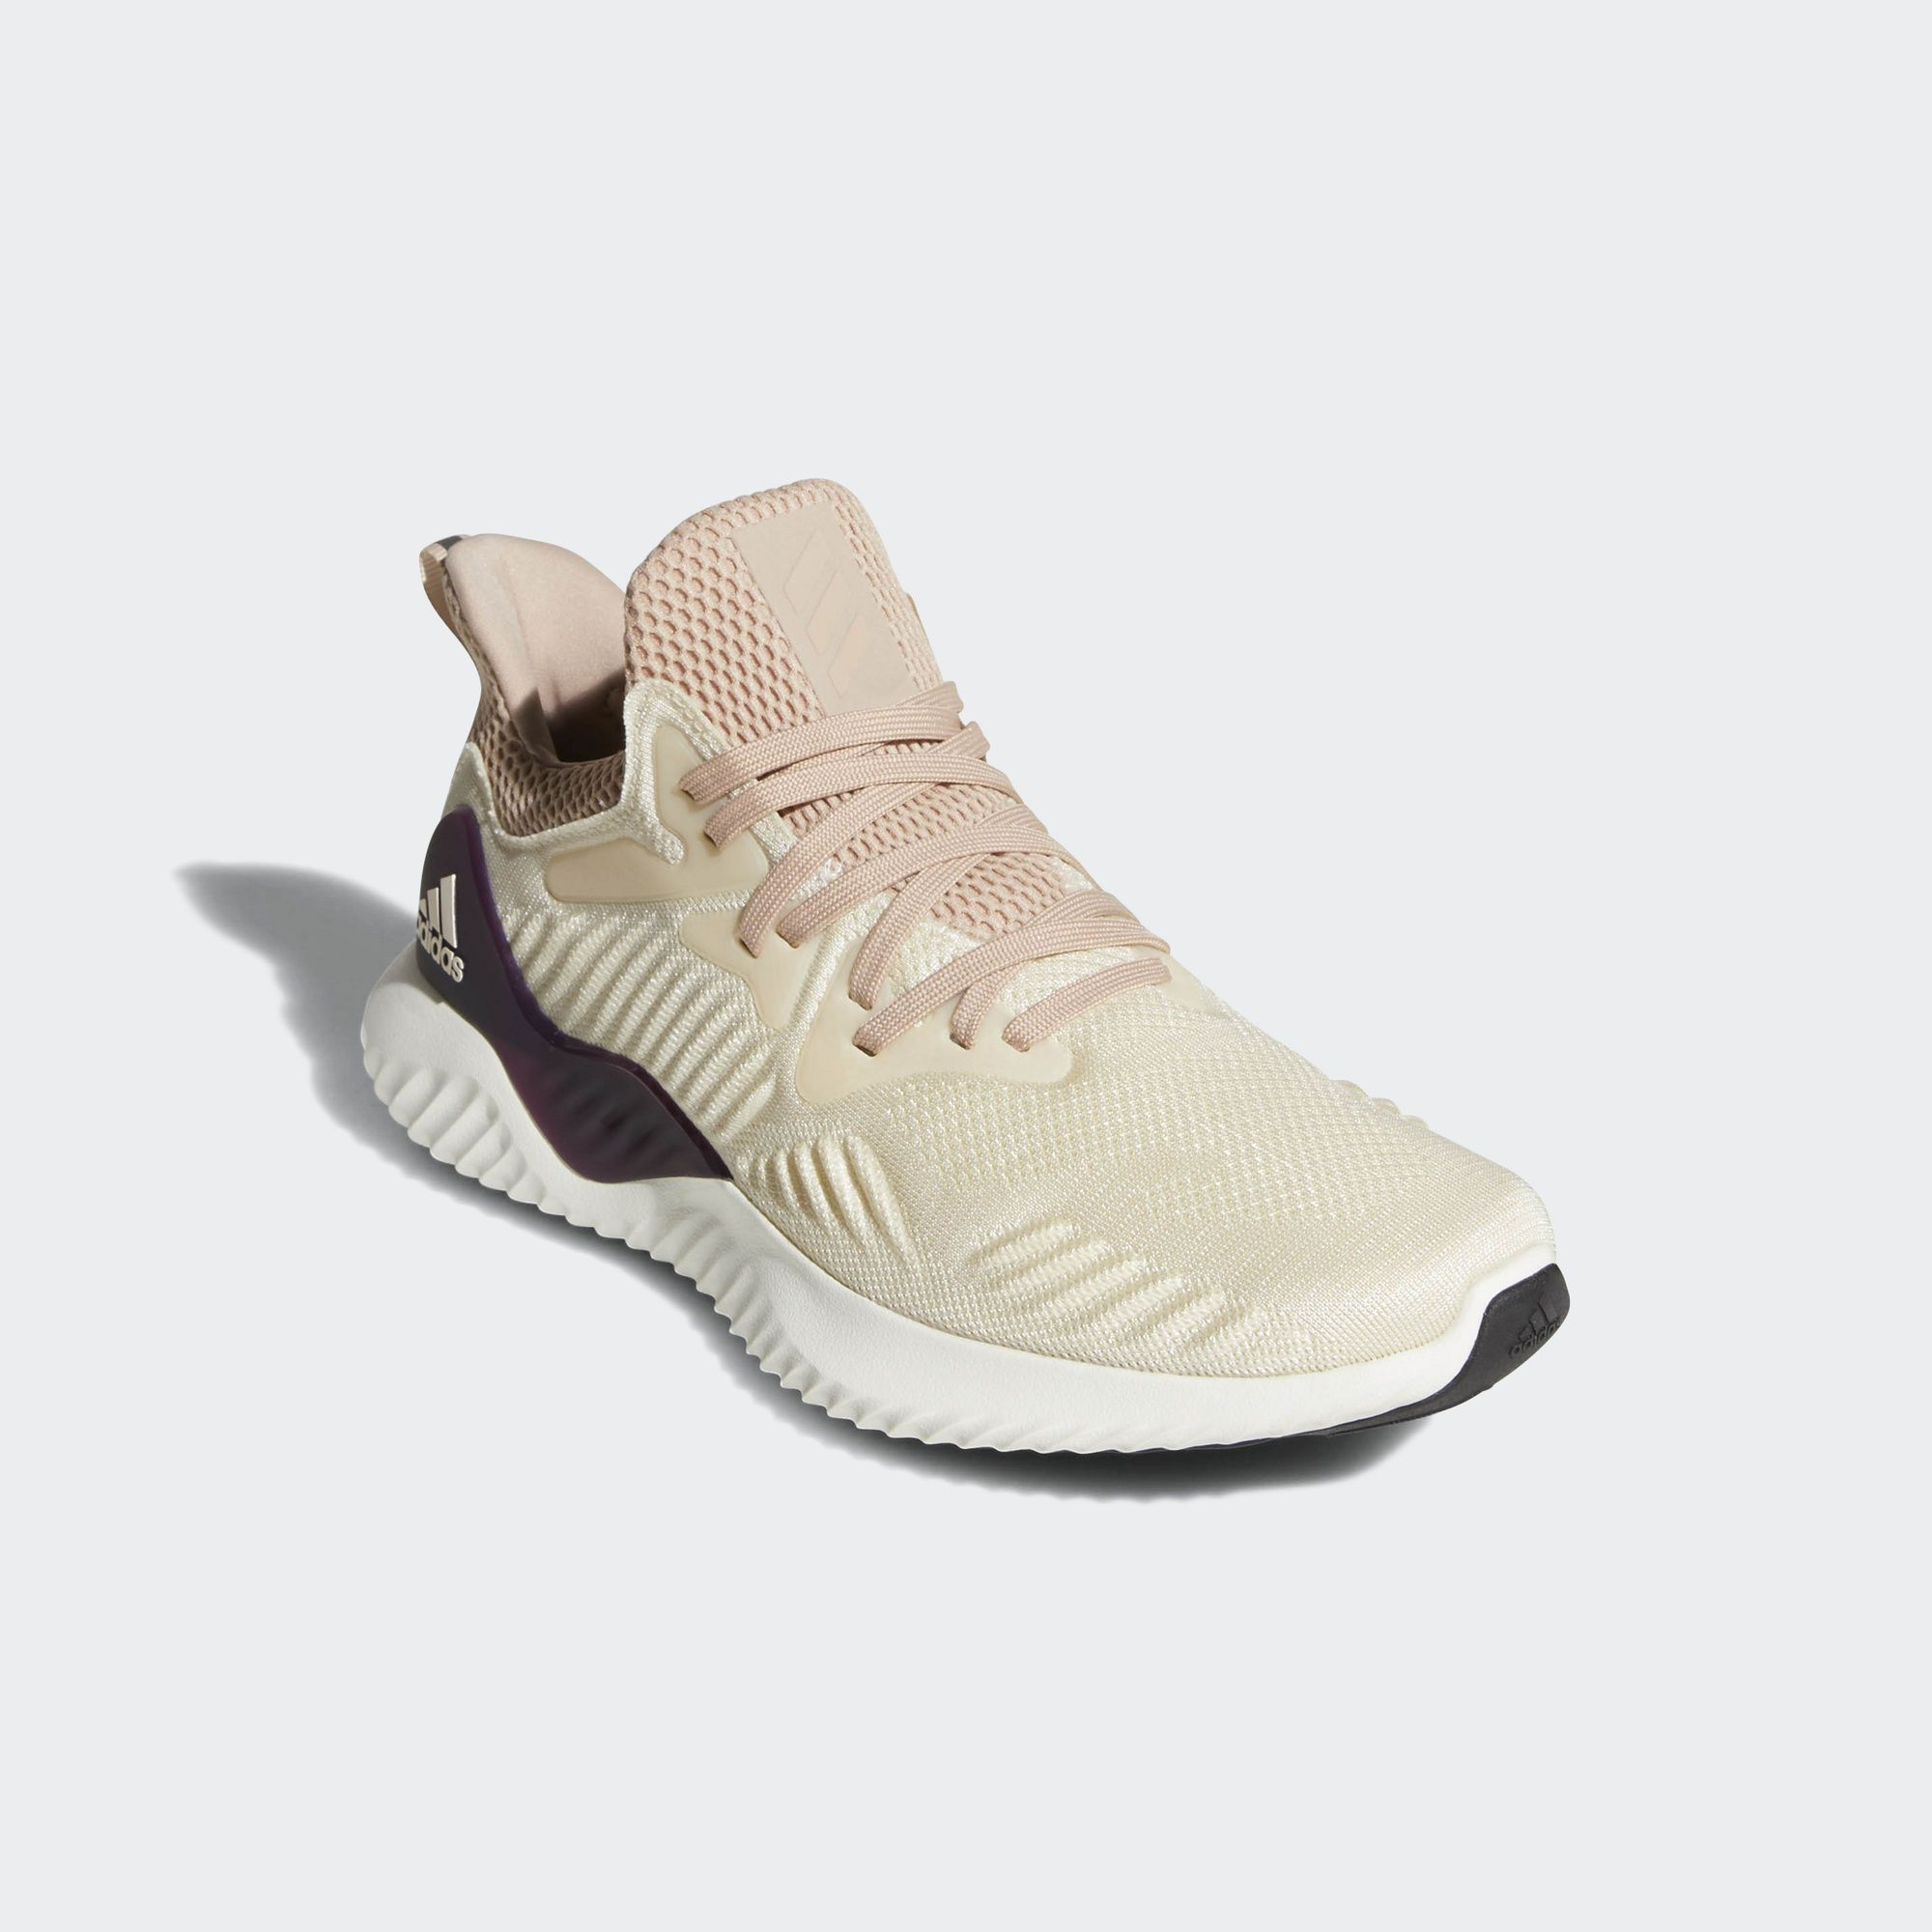 Adidas shoes, Womens running shoes